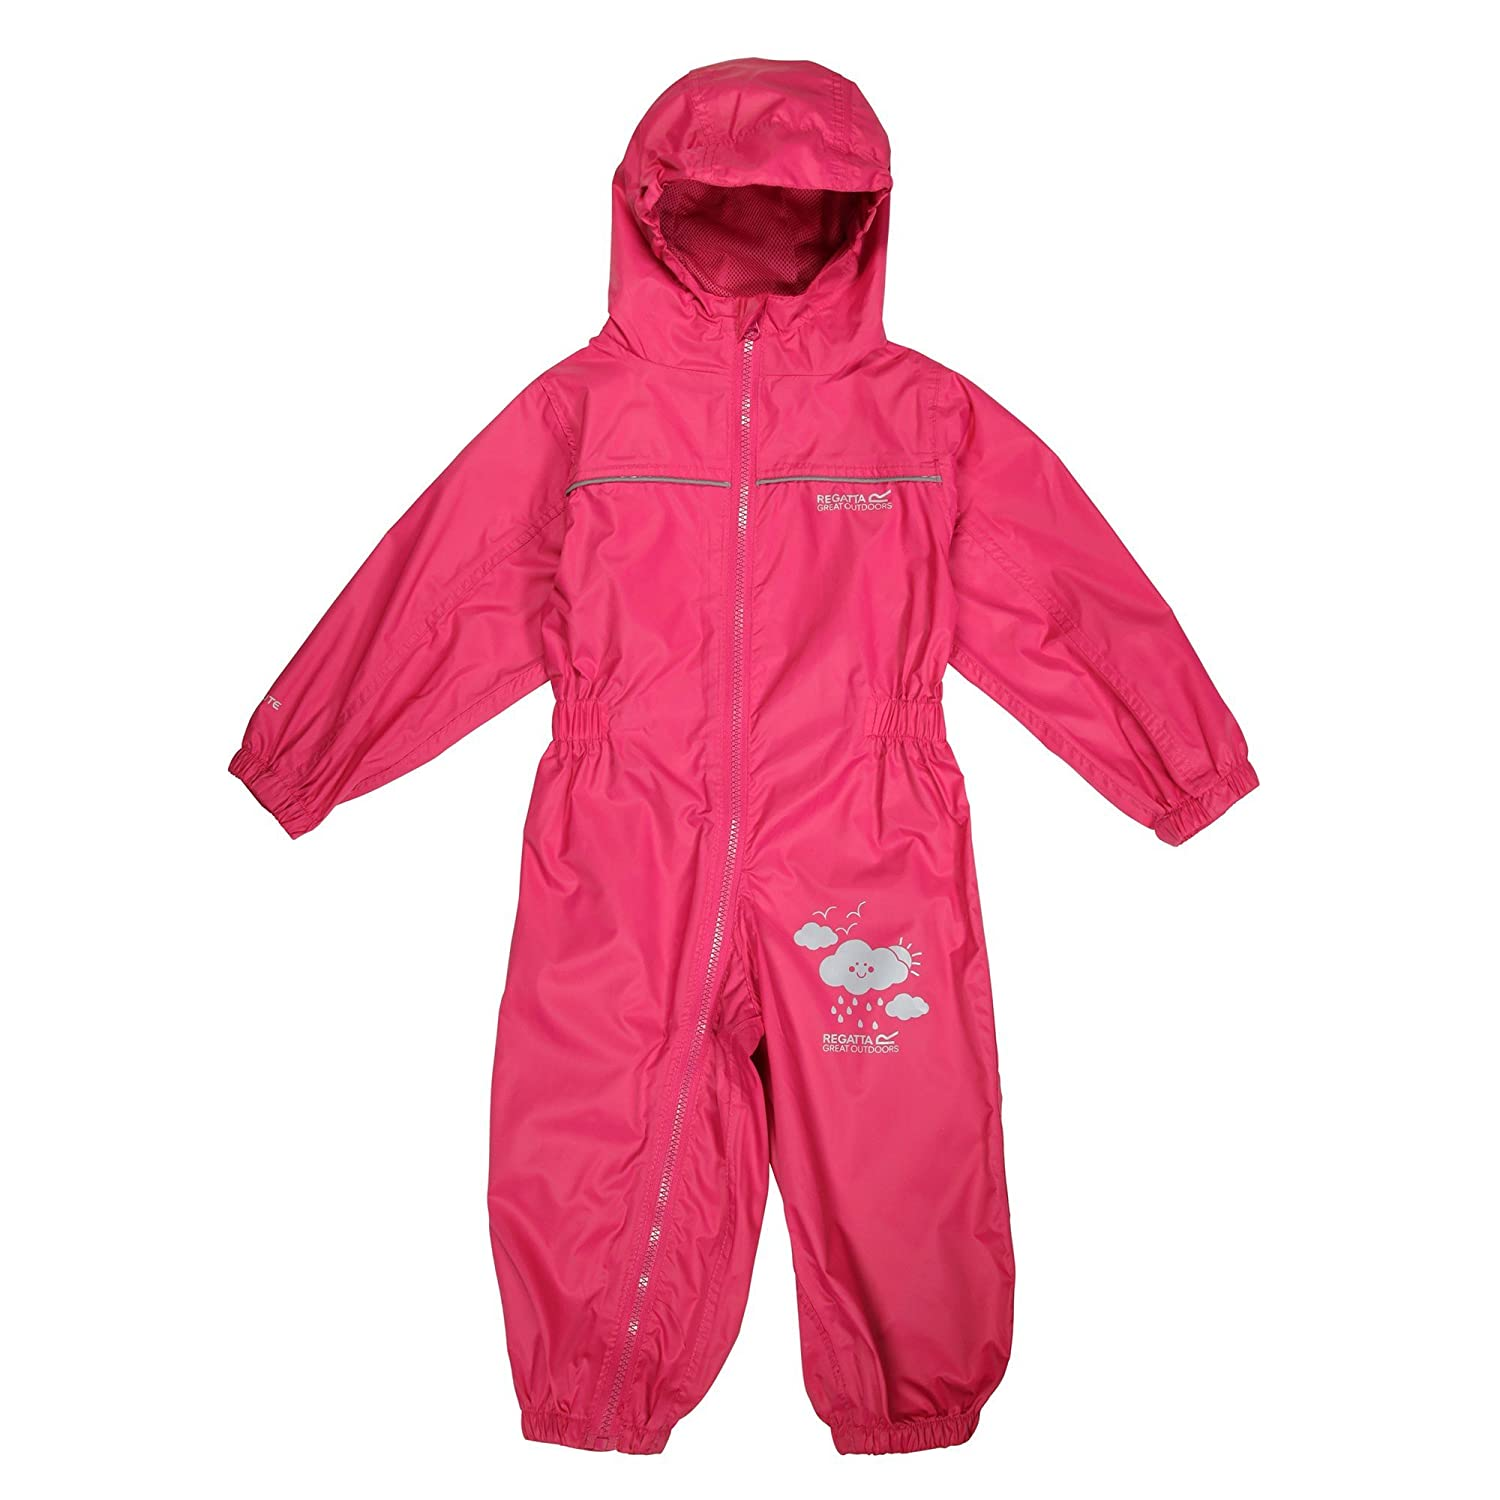 Regatta Toddler's Heritage Puddle IV Walking Suit